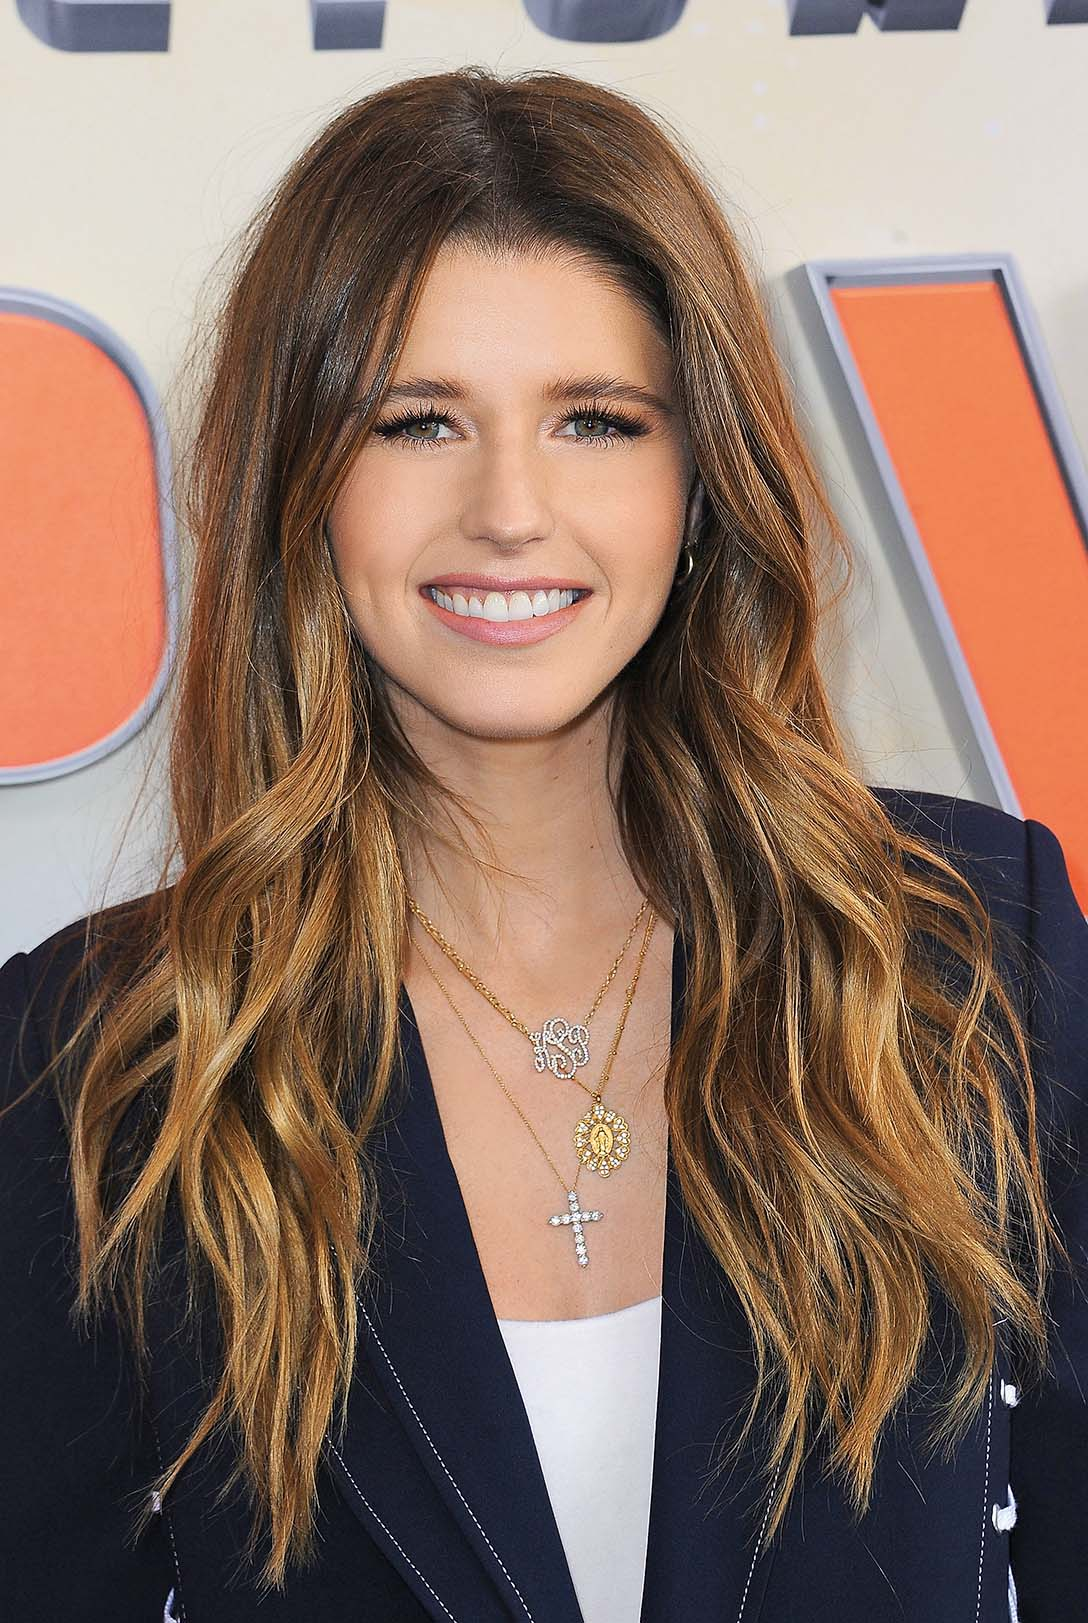 LOS ANGELES, CA - MARCH 09:  Katherine Schwarzenegger, Pedigree Brand Ambassador, arrives for Cosmic Picture's Superpower Dogs held at California Science Center on March 9, 2019 in Los Angeles, California.  (Photo by Albert L. Ortega/Getty Images)